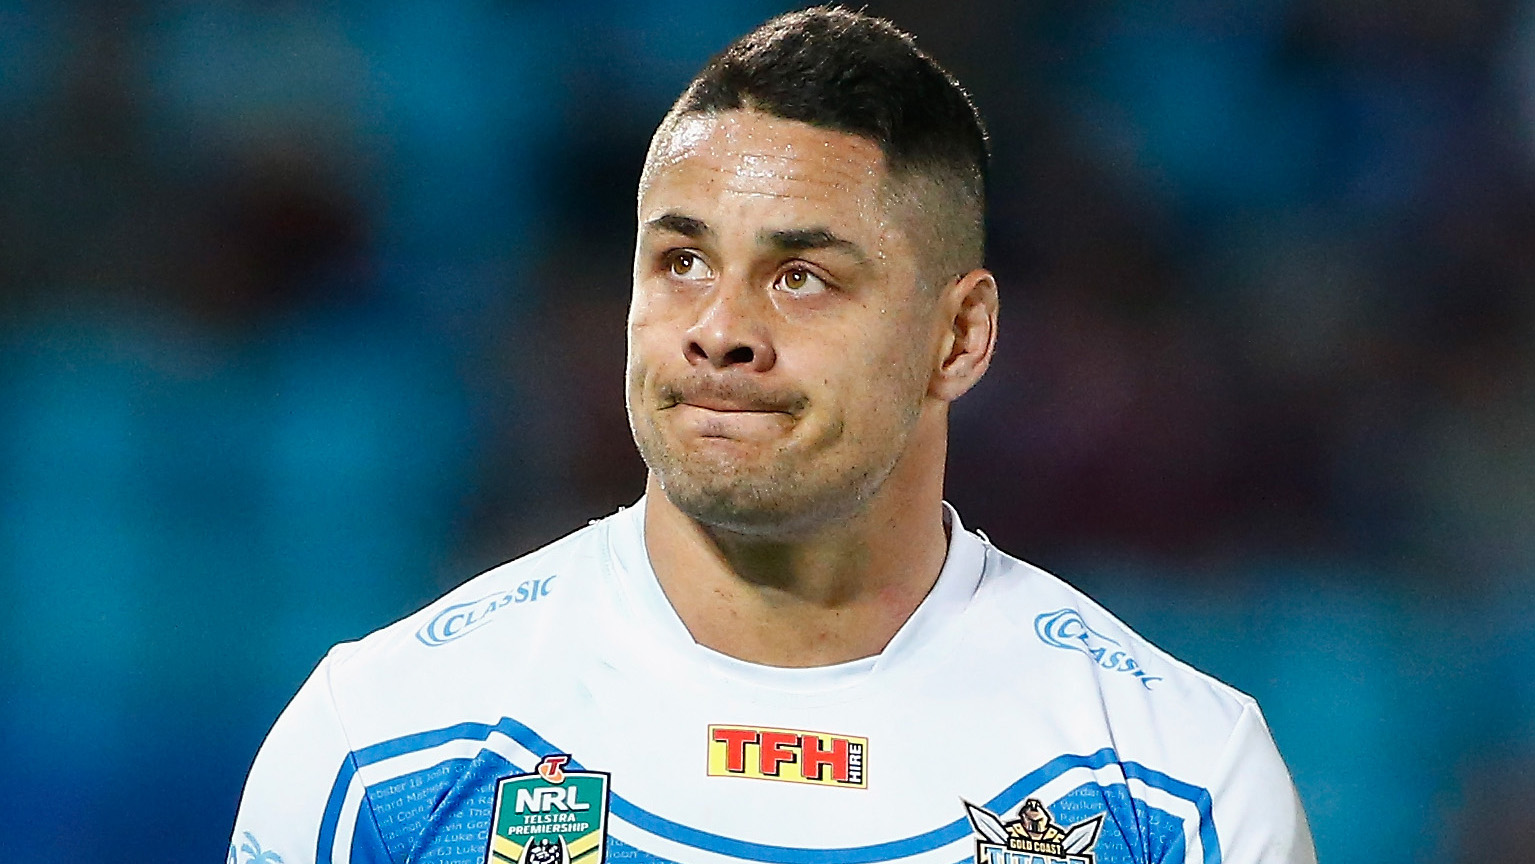 NRL star Jarryd Hayne accused of rape in the United States